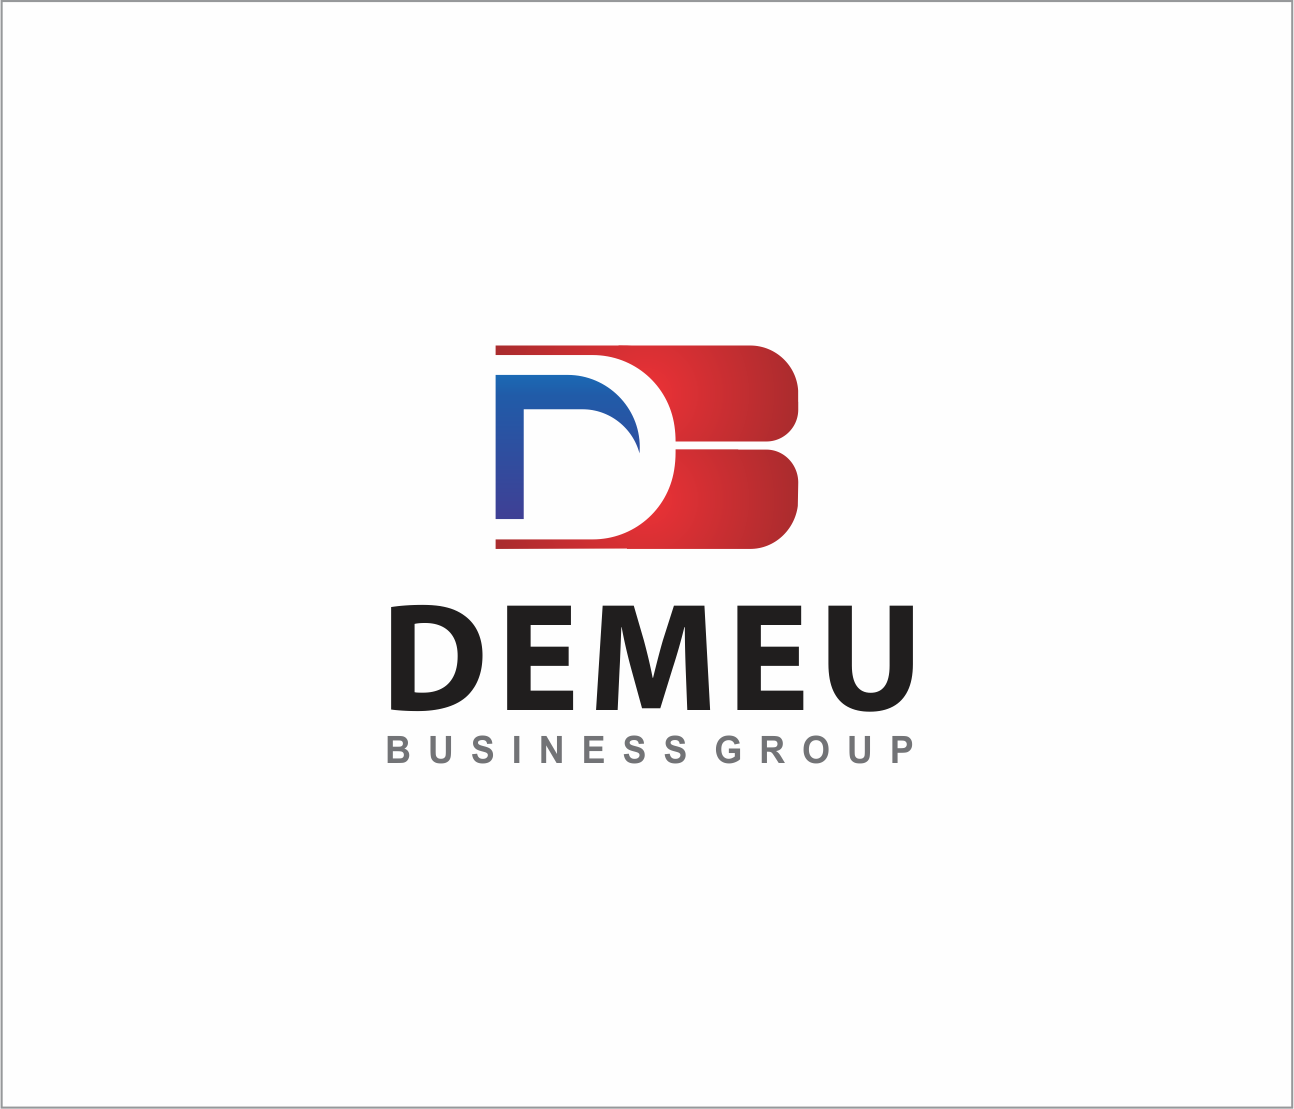 Logo Design by Armada Jamaluddin - Entry No. 159 in the Logo Design Contest Captivating Logo Design for DEMEU Business Group.